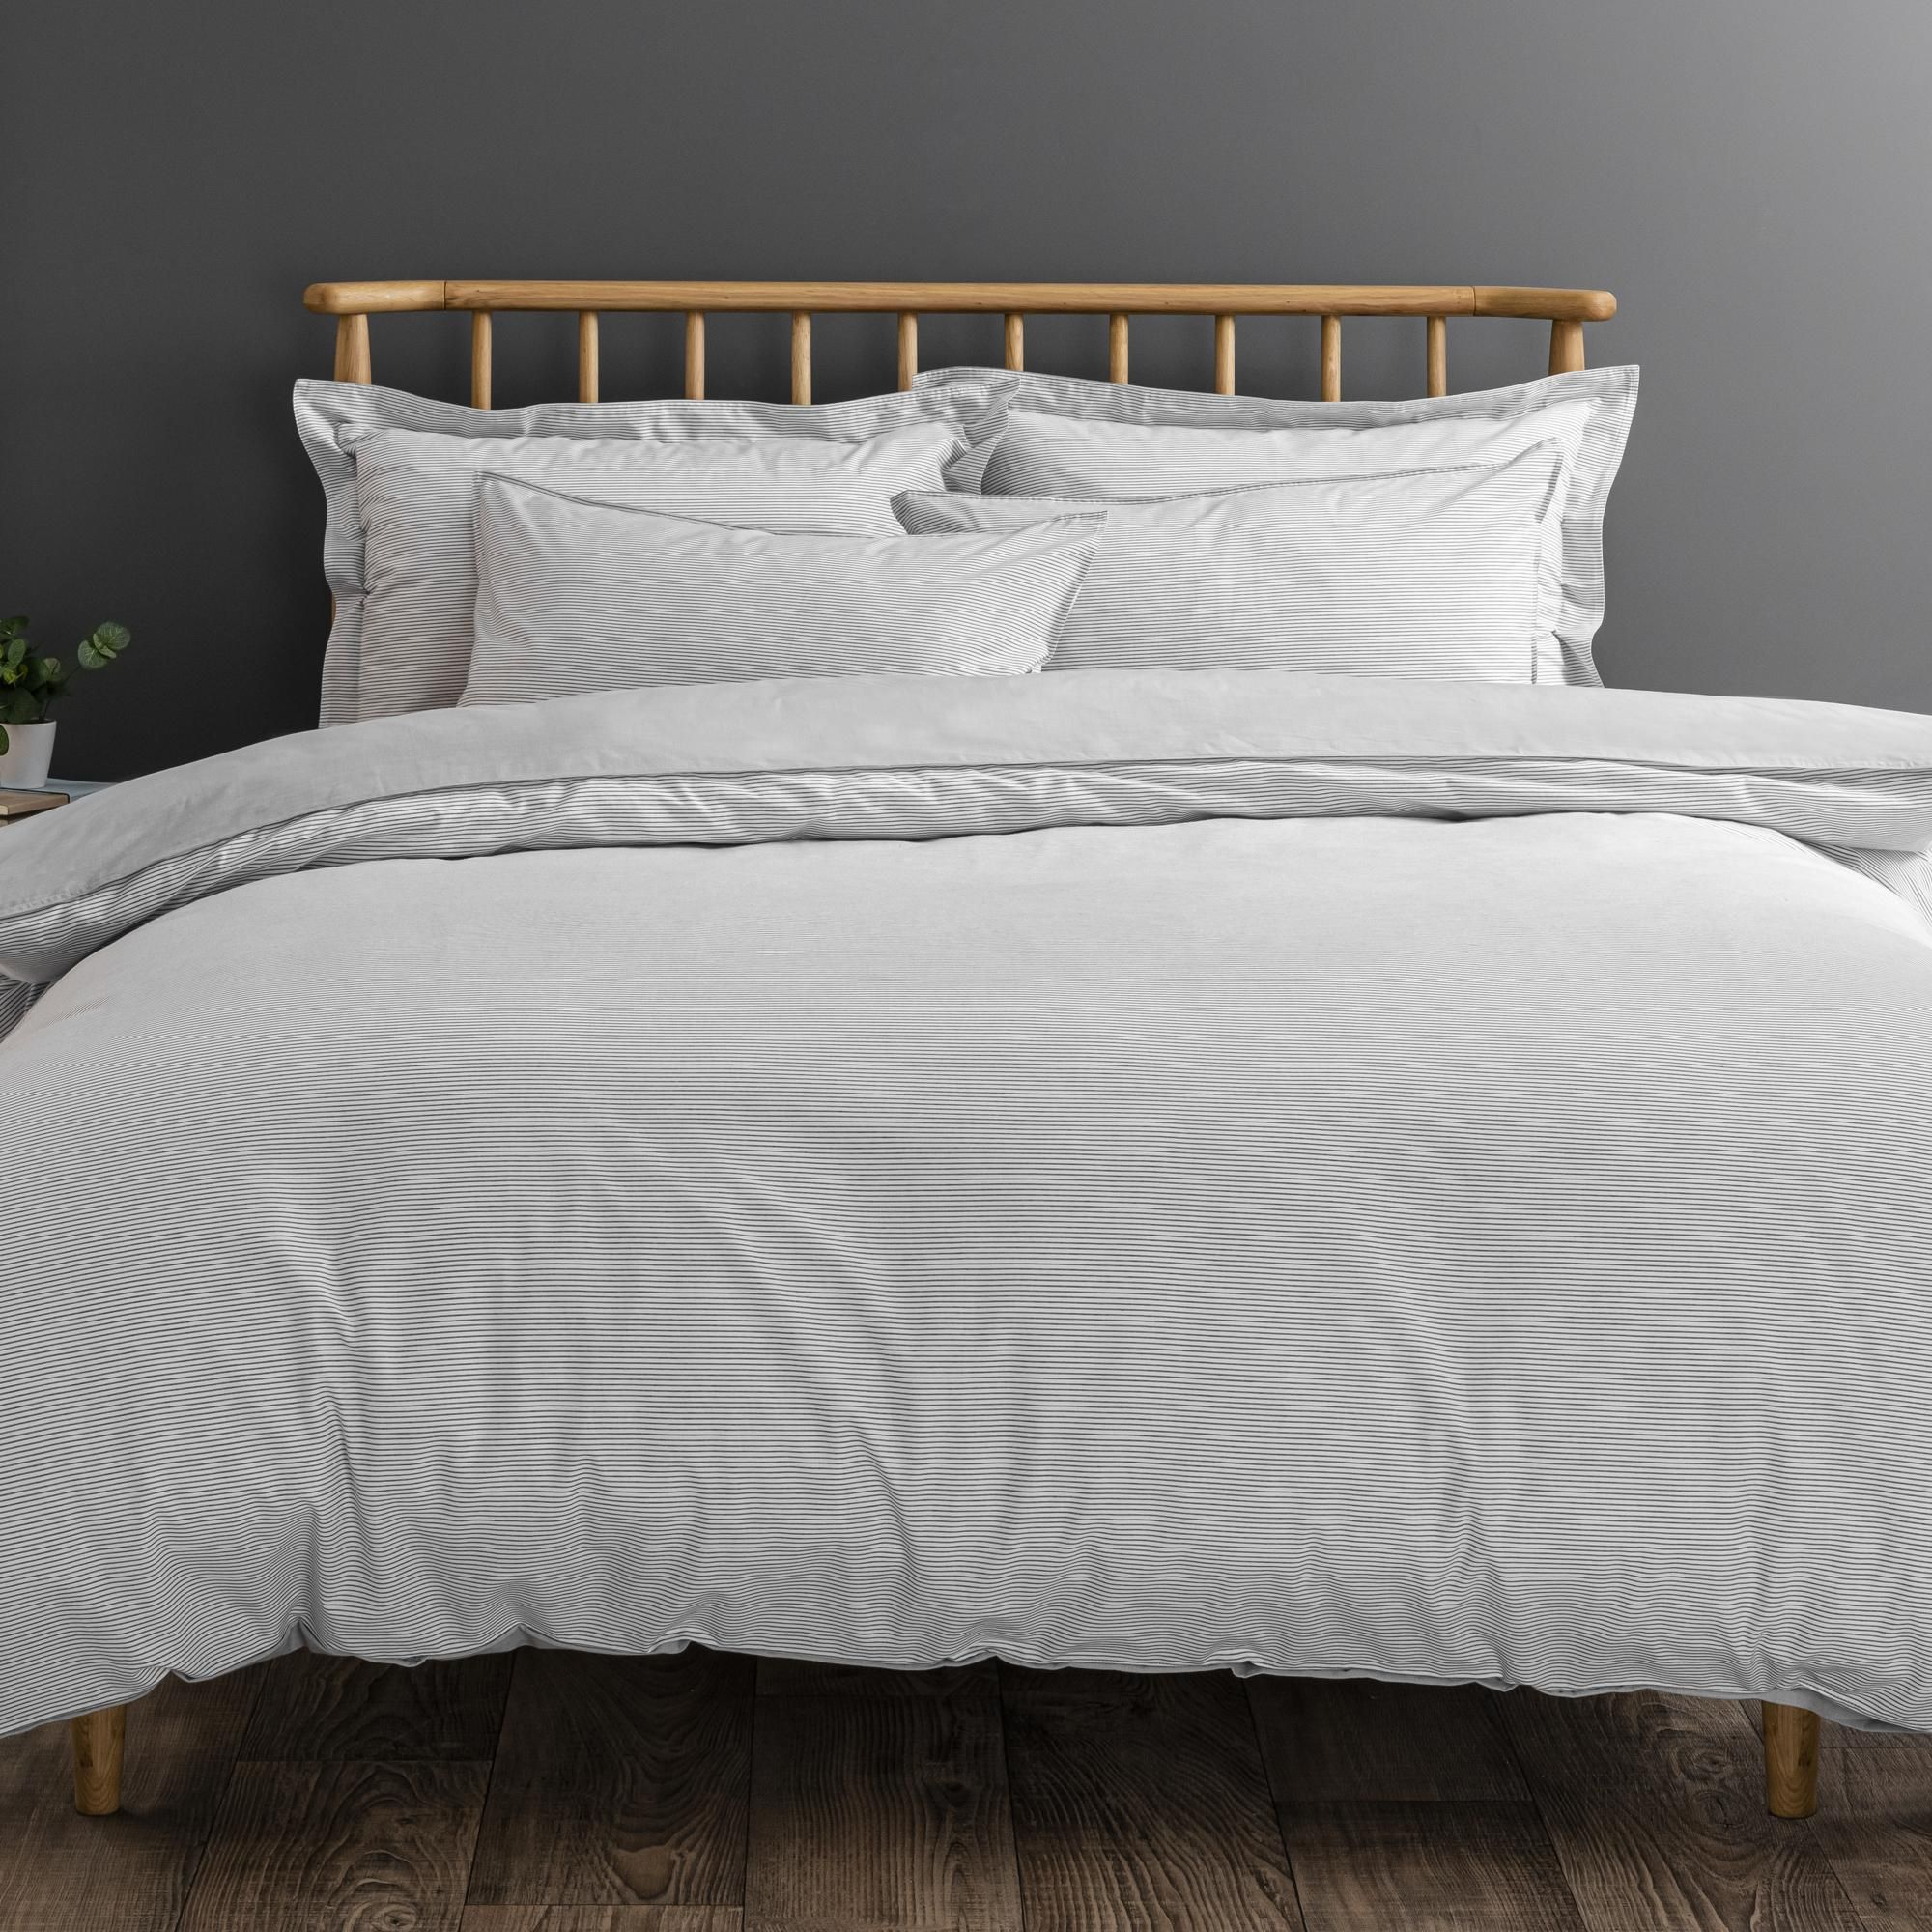 Riviera Grey Stripe 100 Cotton Duvet Cover And Pillowcase Set In 2020 100 Cotton Duvet Covers Duvet Covers Duvet Cover Sizes